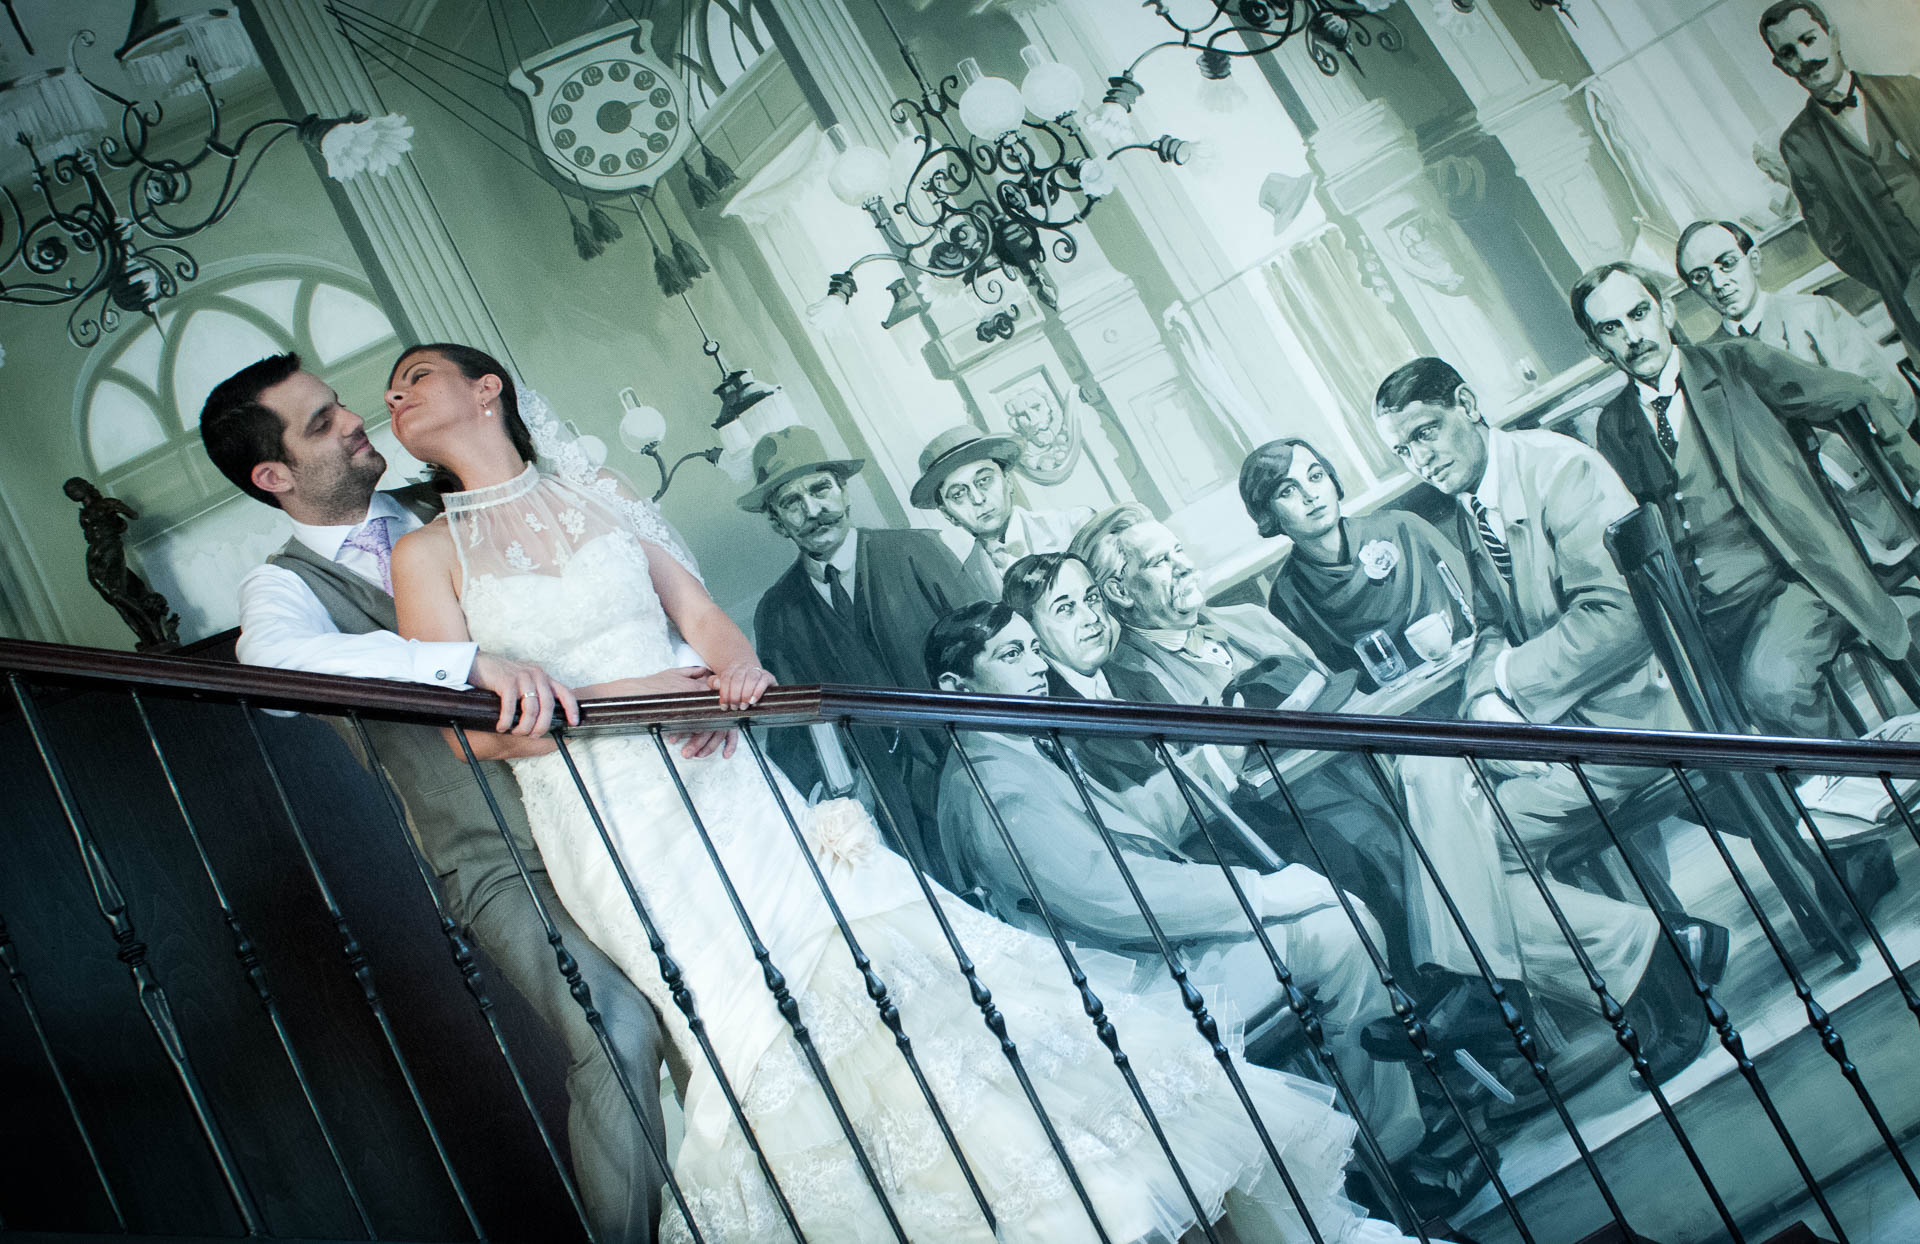 Adventure wedding location idea is Budapest, with bohemian bars and cafes